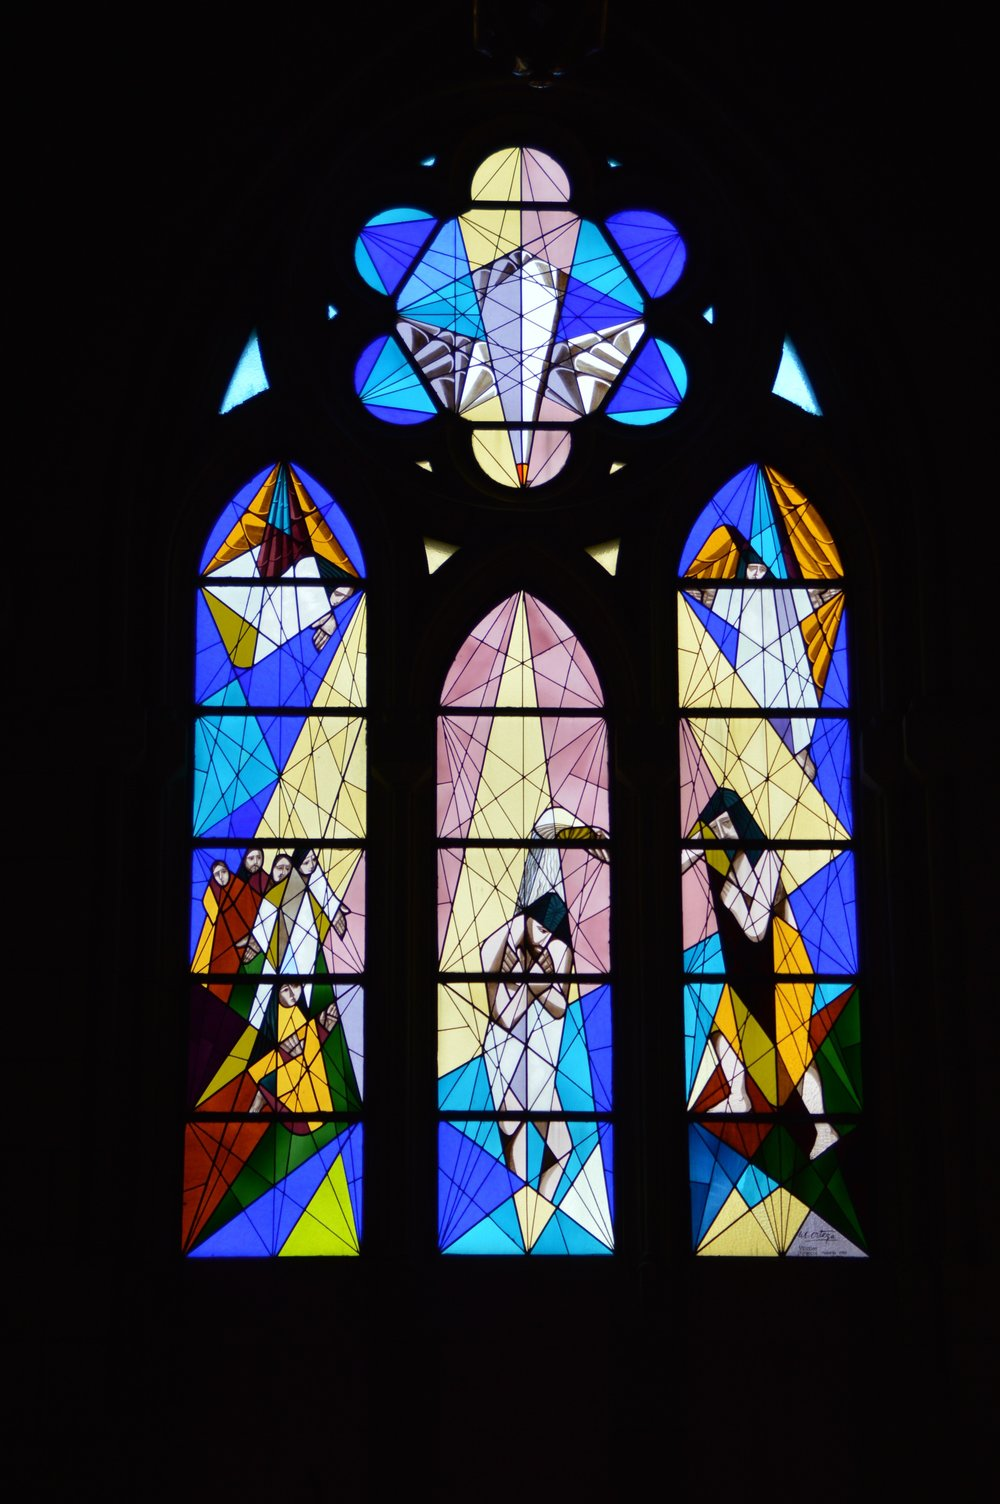 Modern Stained Glass for a Modern Congregation